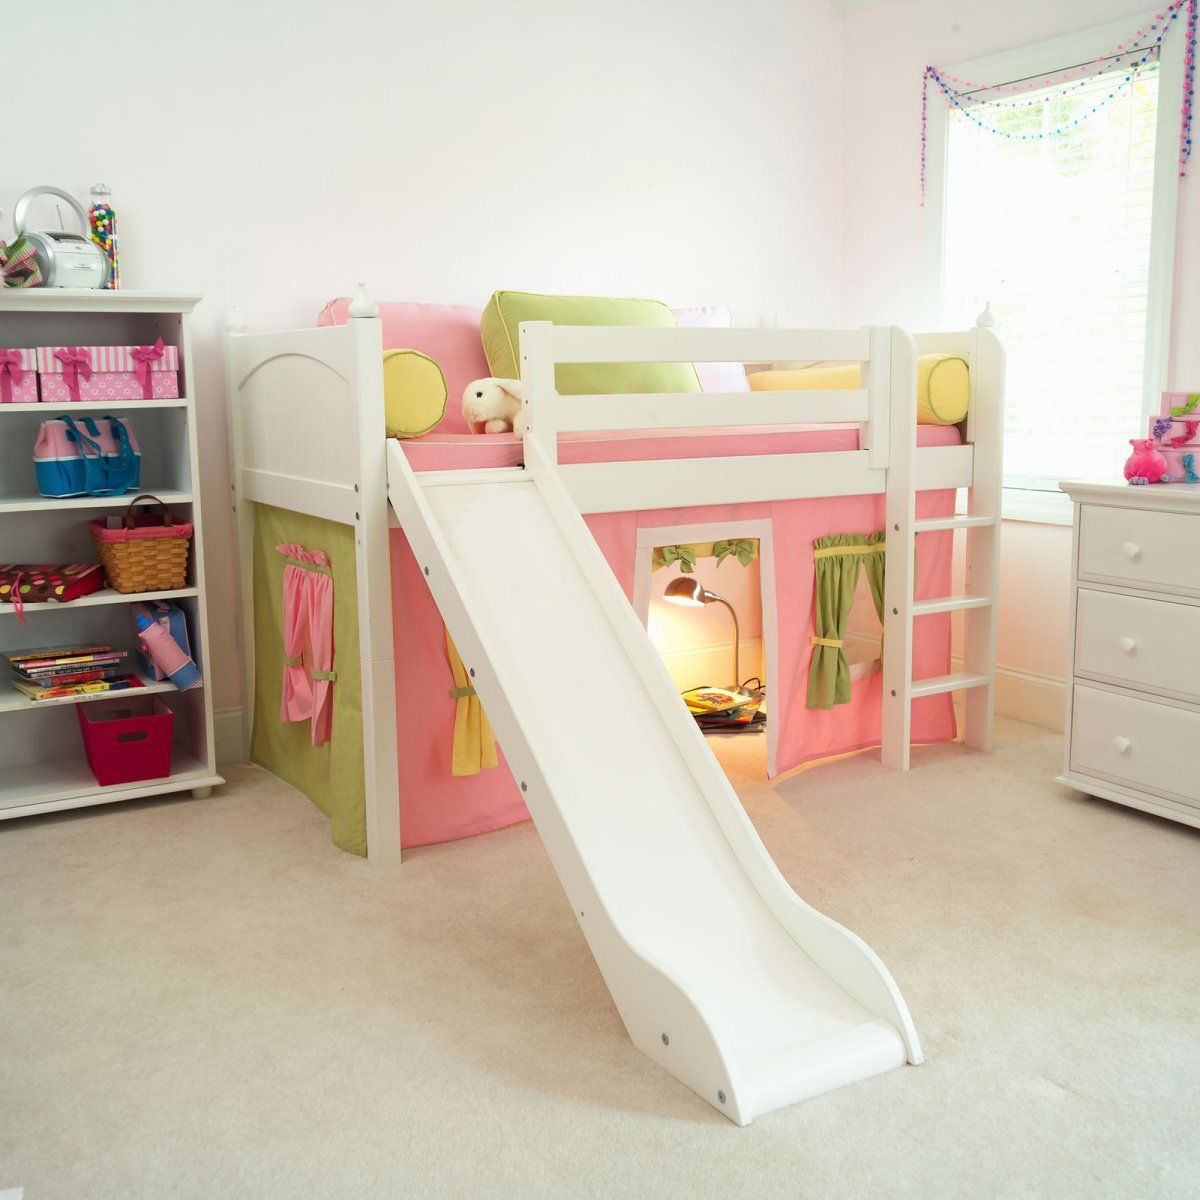 Marvelous Girl Tent Low Loft with Slide - Kids Beds at Kids Furniture Mart - Obviously I would get the boy version. & Too cute to not pin!! Marvelous Girl Tent Low Loft with Slide ...